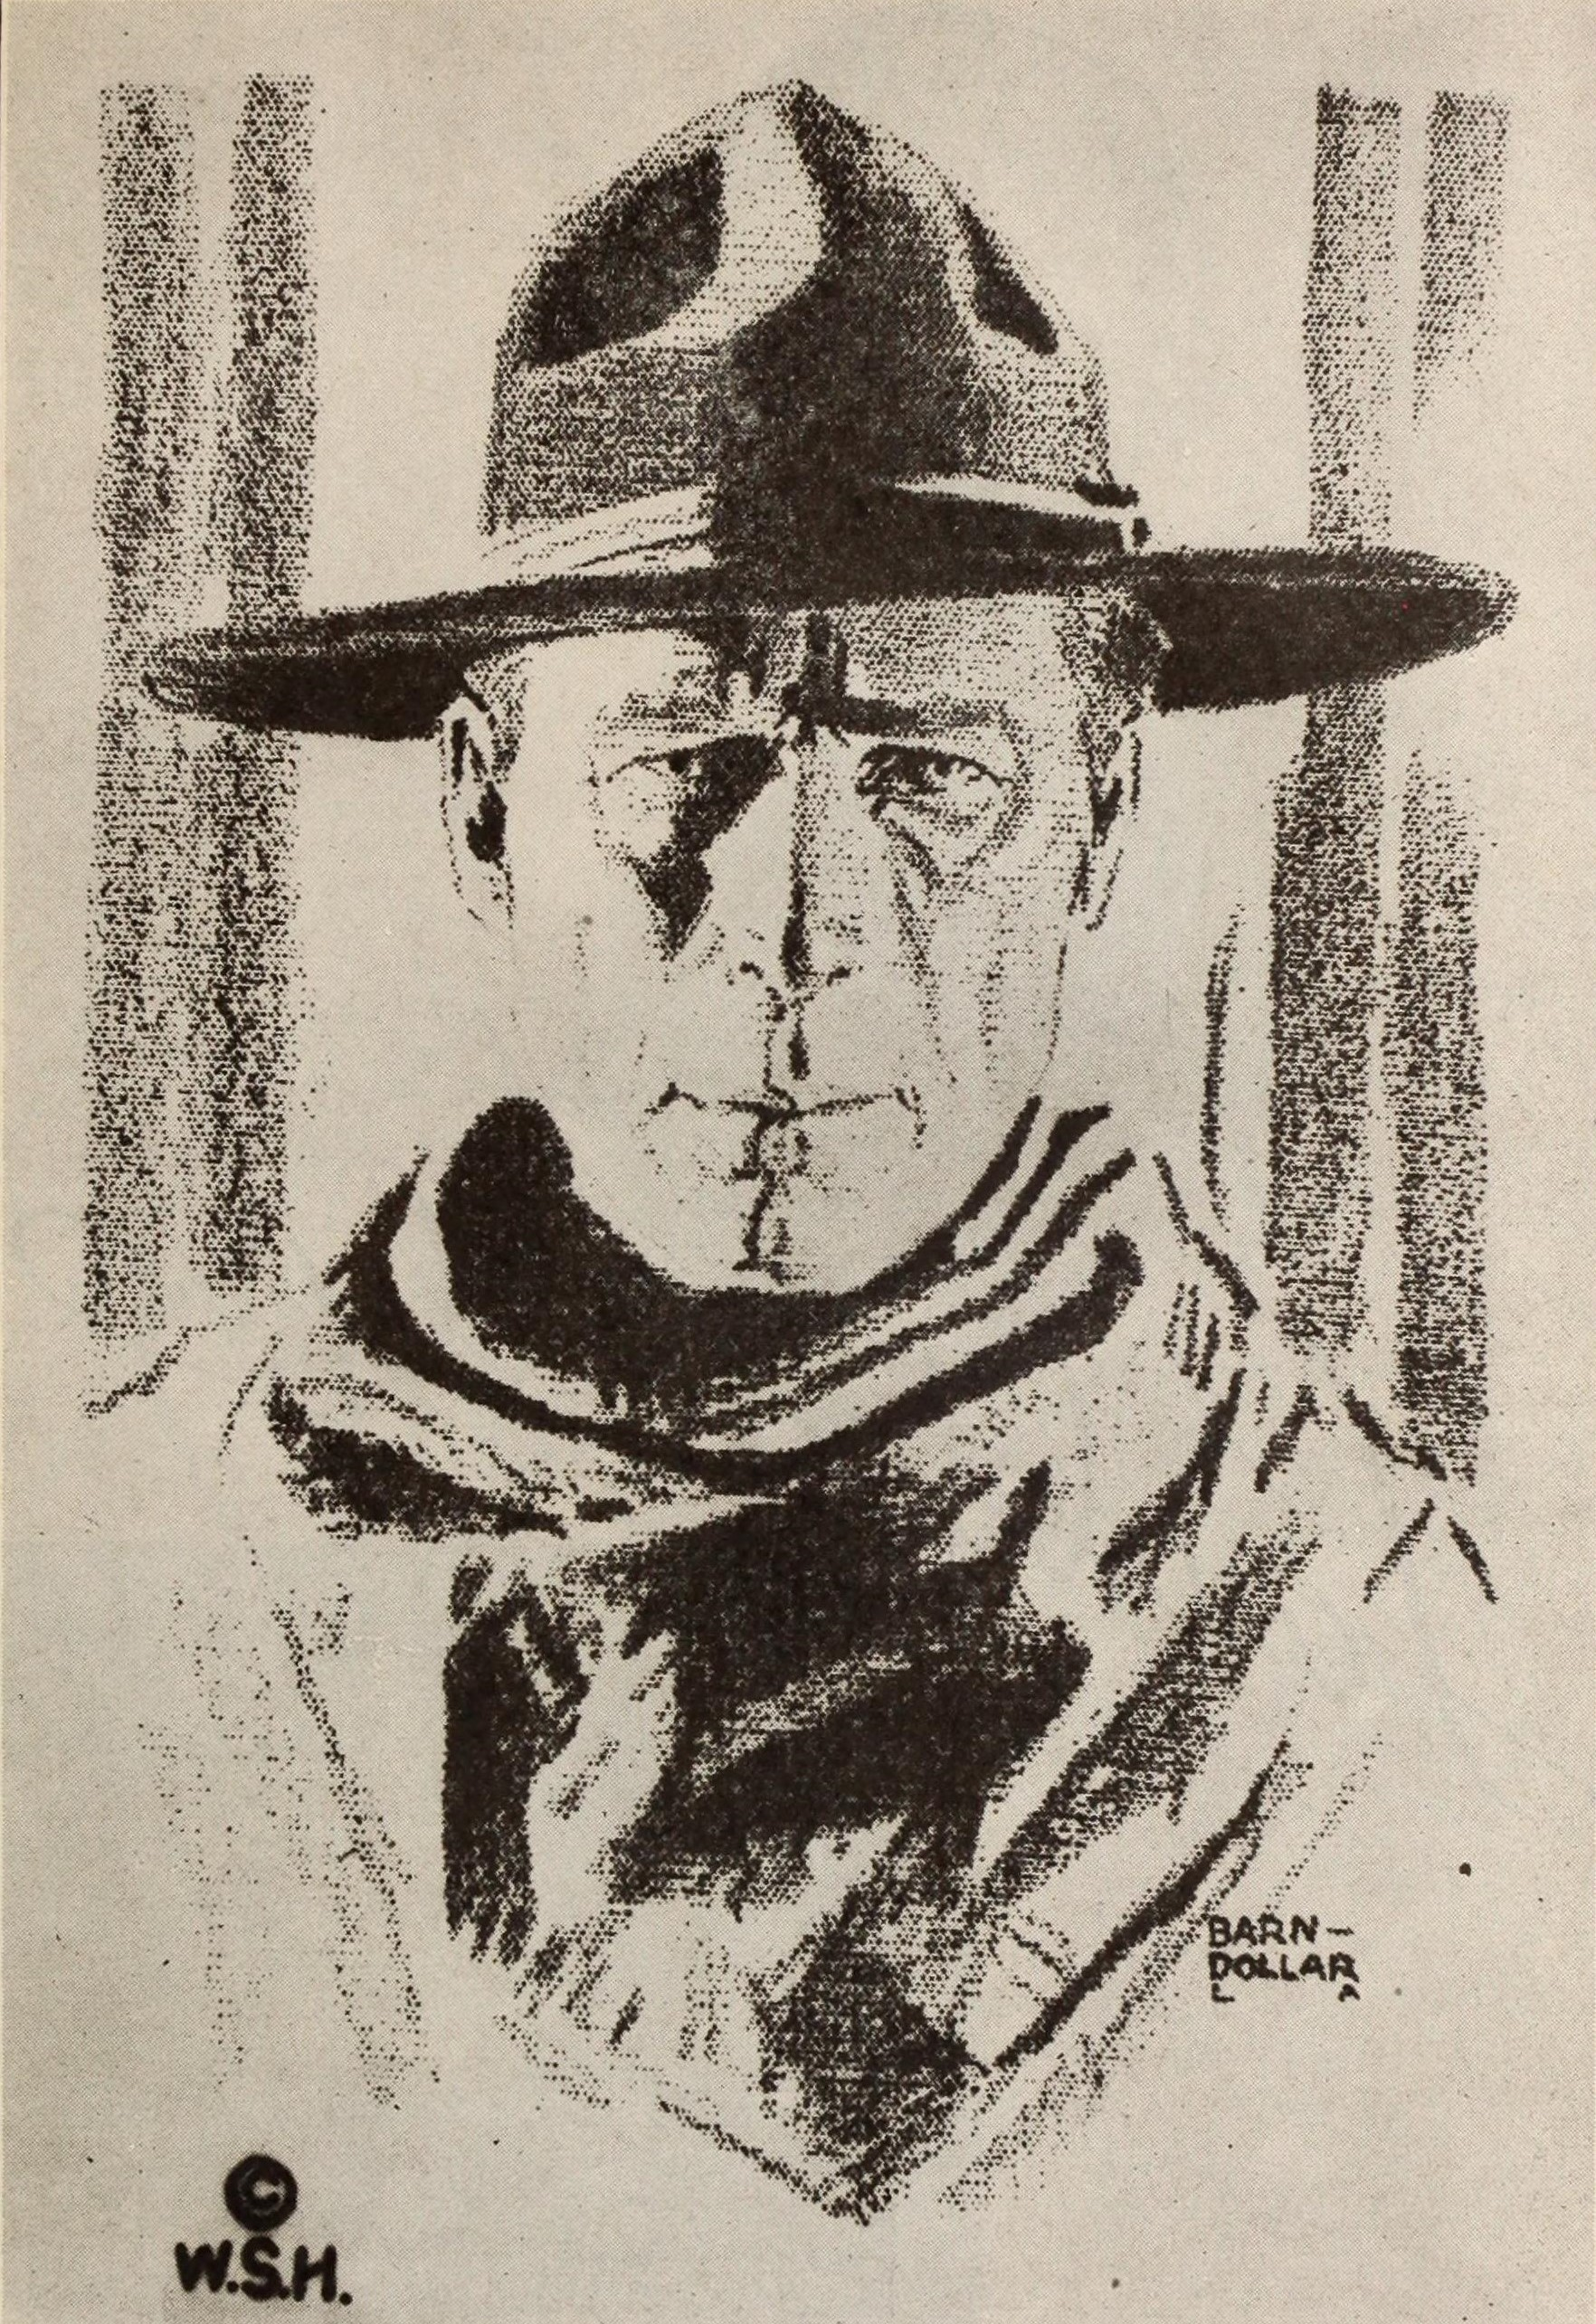 """A drawing of silent film actor William S. Hart by """"Barn Dollar"""" published in Wid's Yearbook in 1920"""